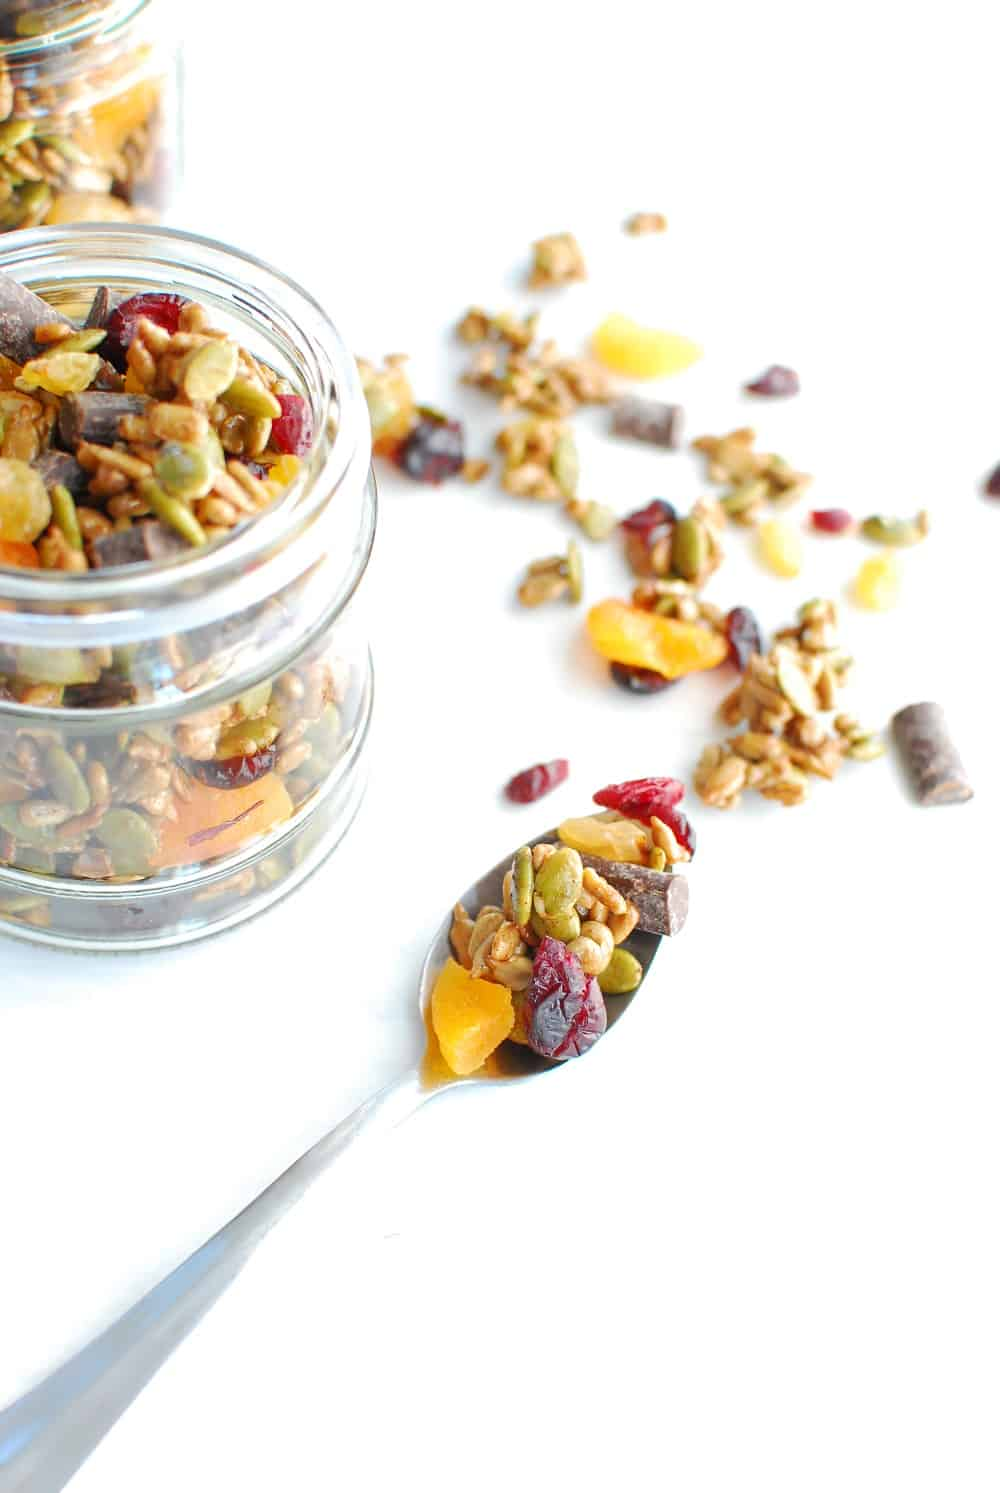 A spoonful of nut free trail mix next to a jar of it